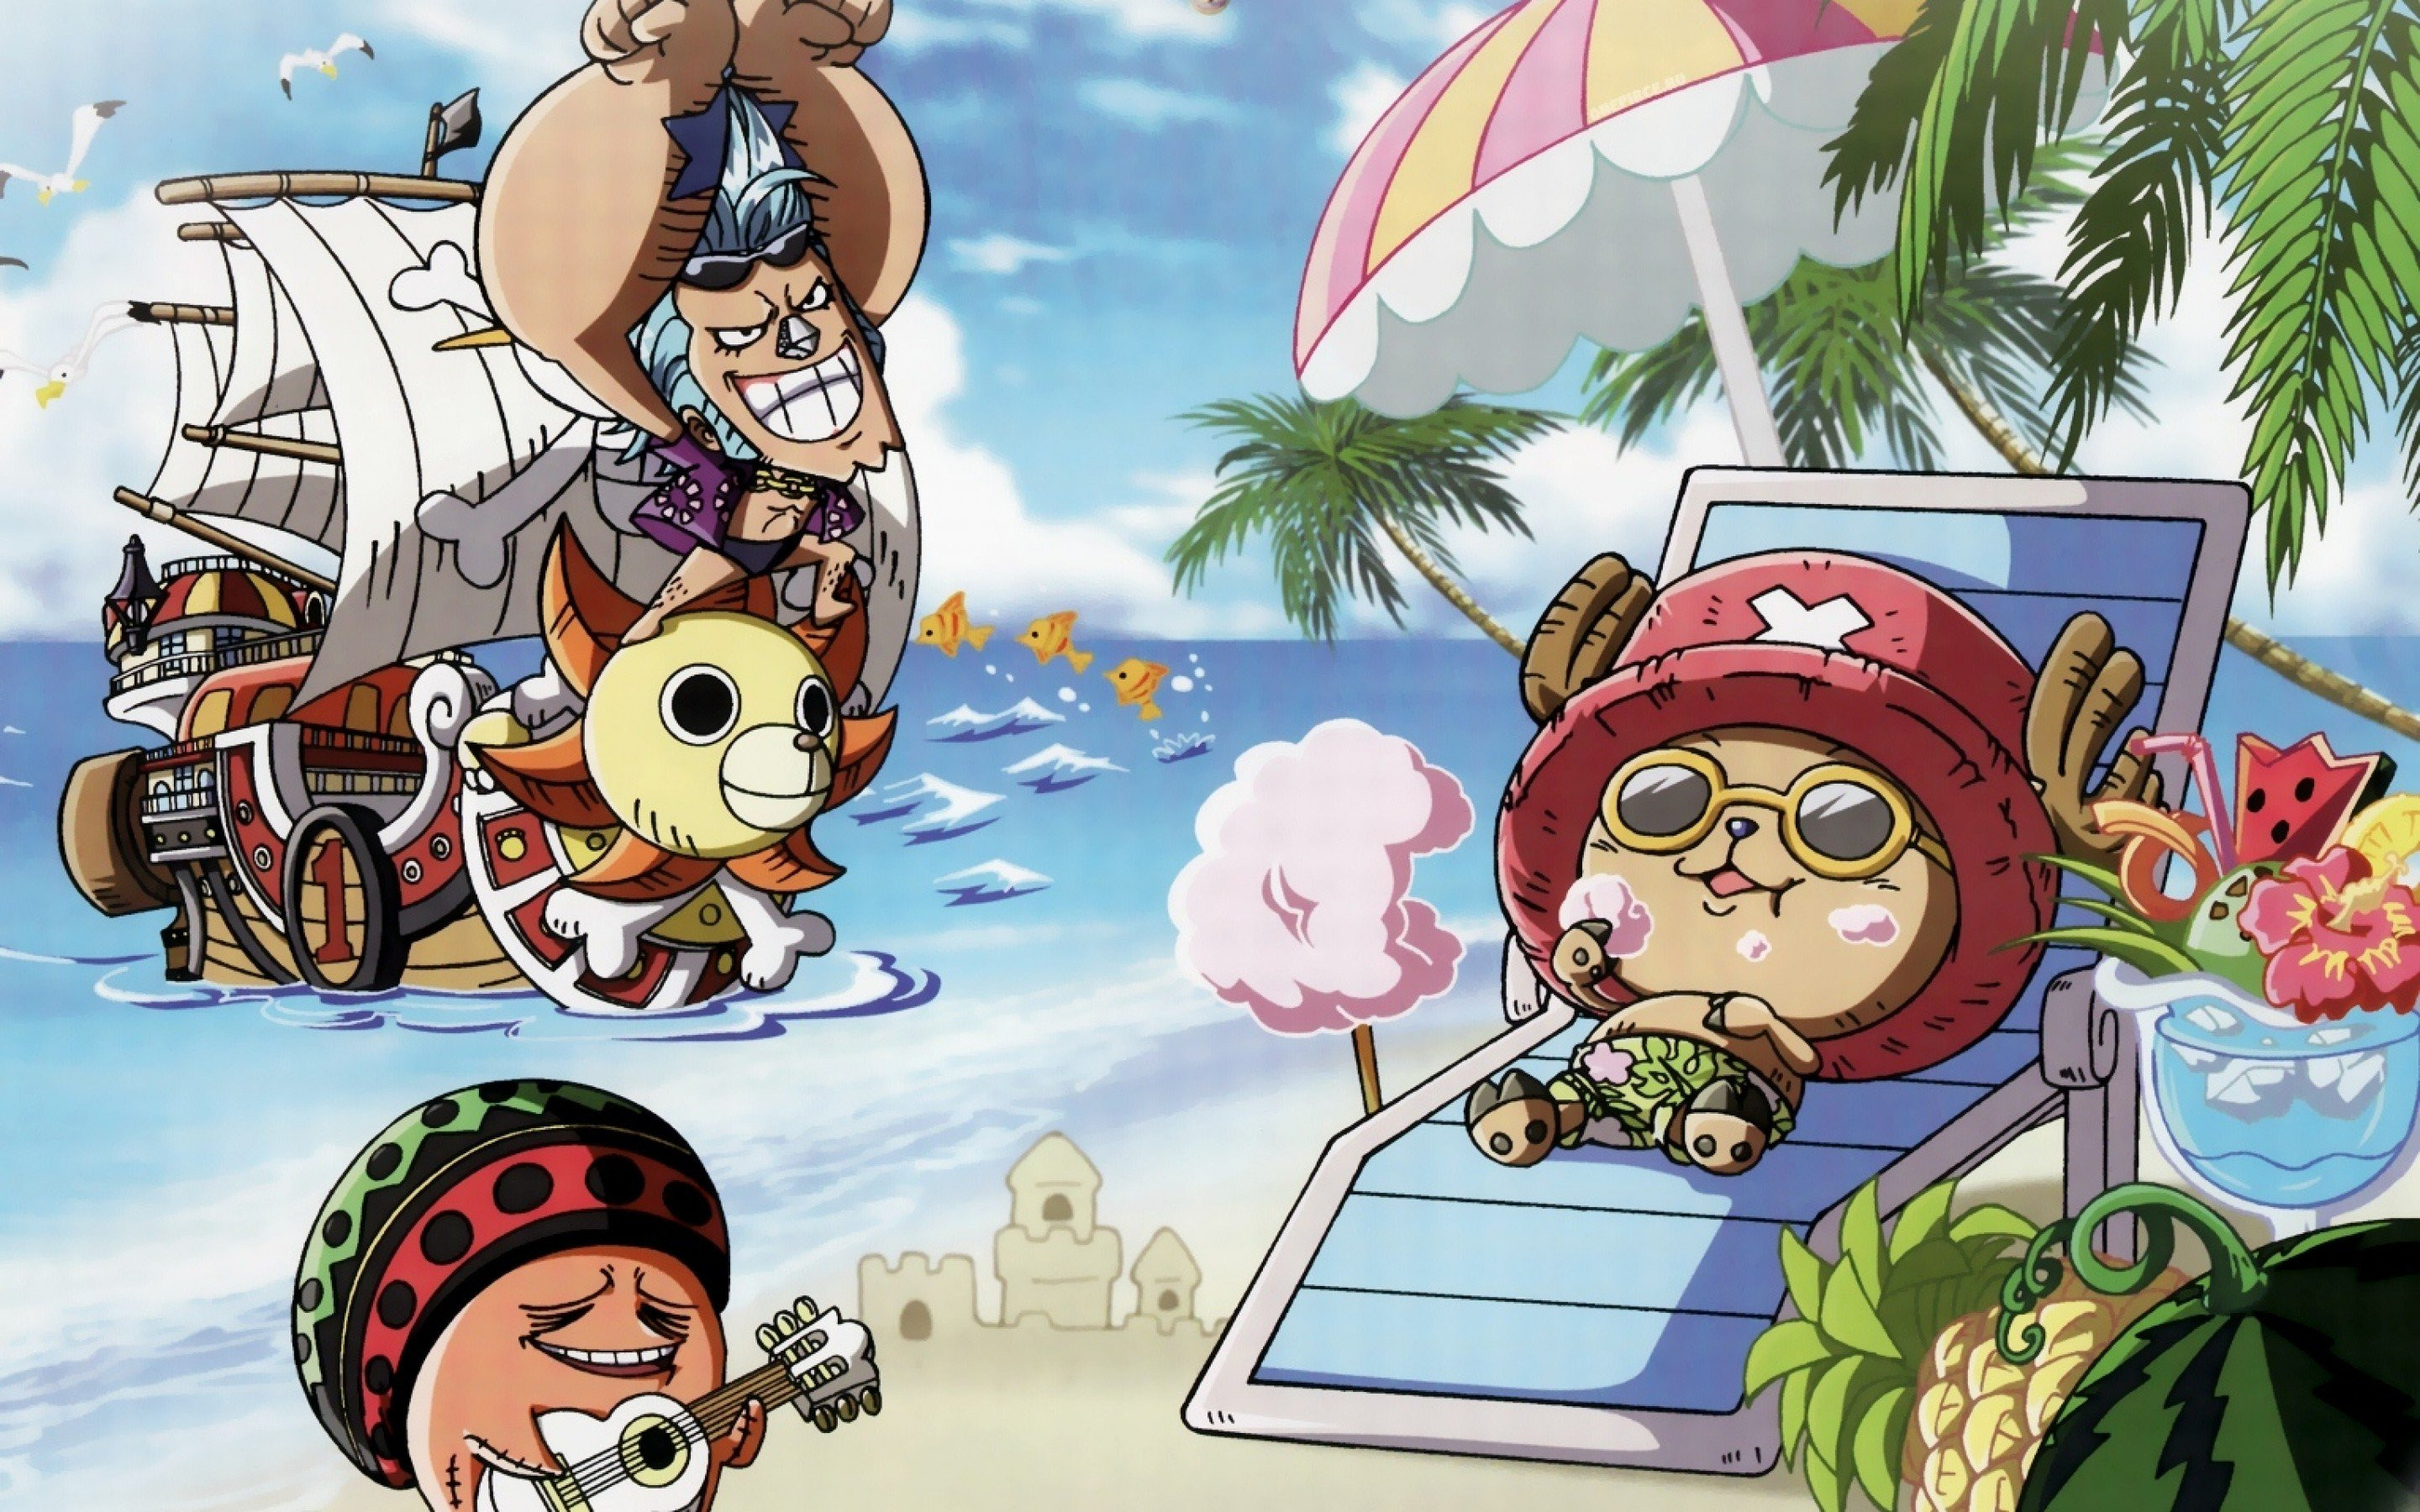 Res: 2880x1800, One Piece Chibi Wallpaper One Piece Chibi Hd – Walldevil